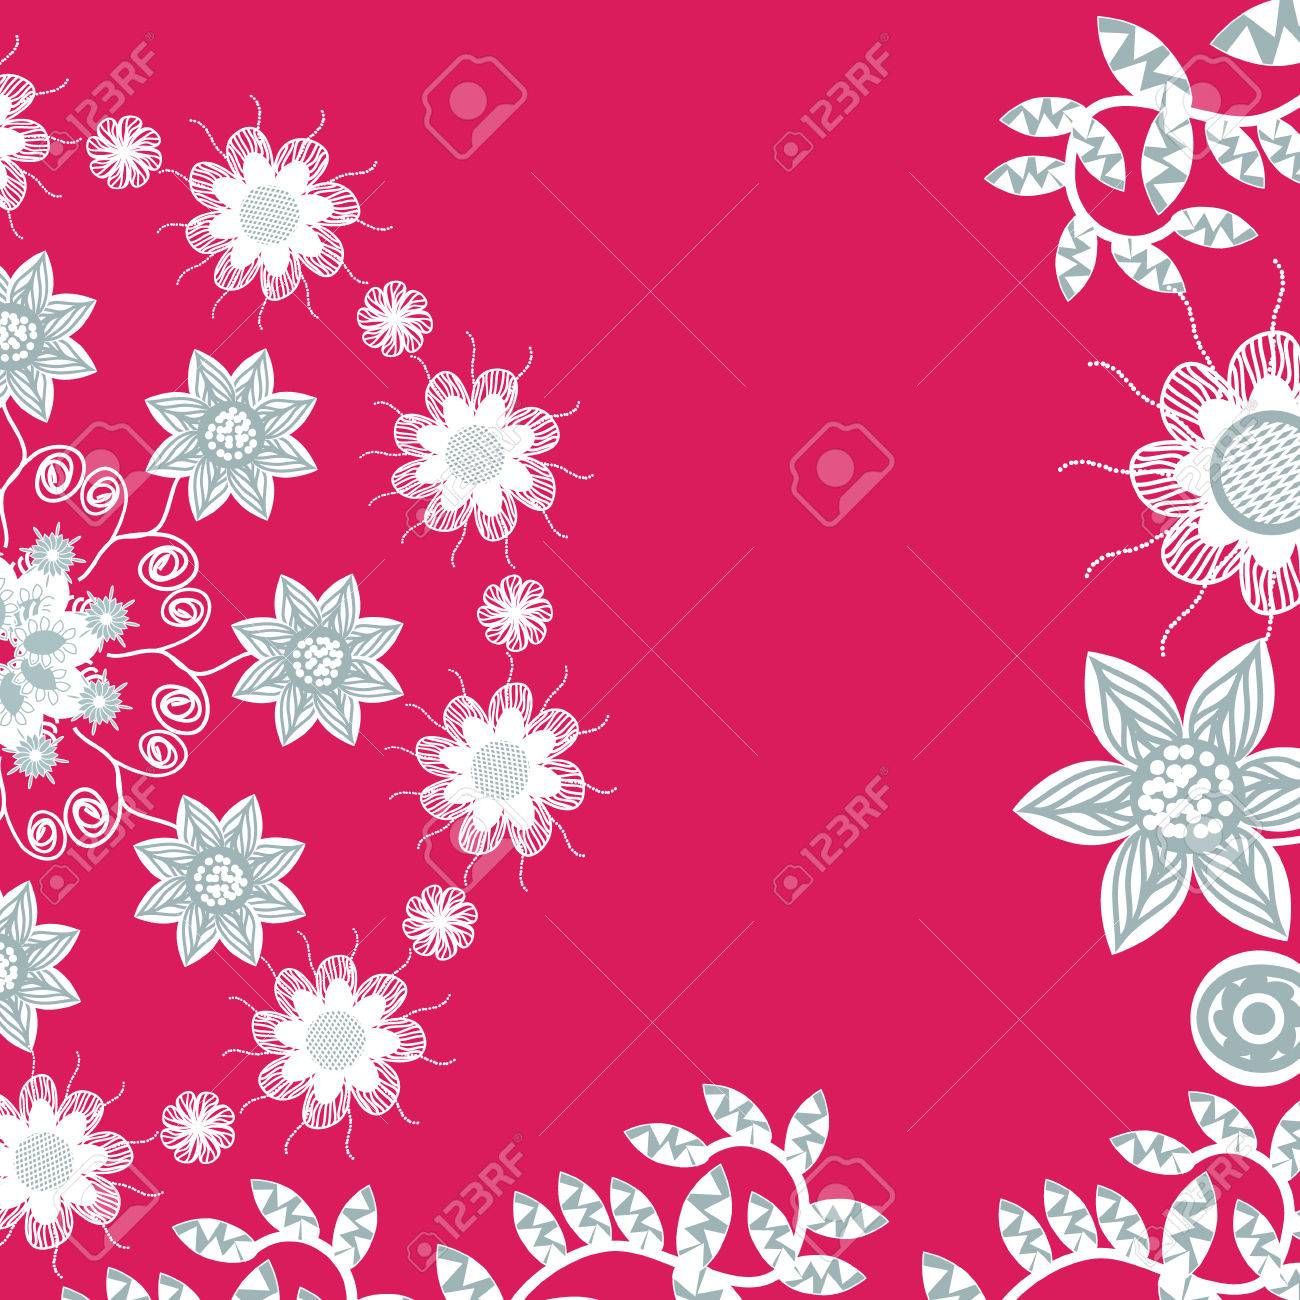 Floral Invitation Or Greeting Card On Red Background Template